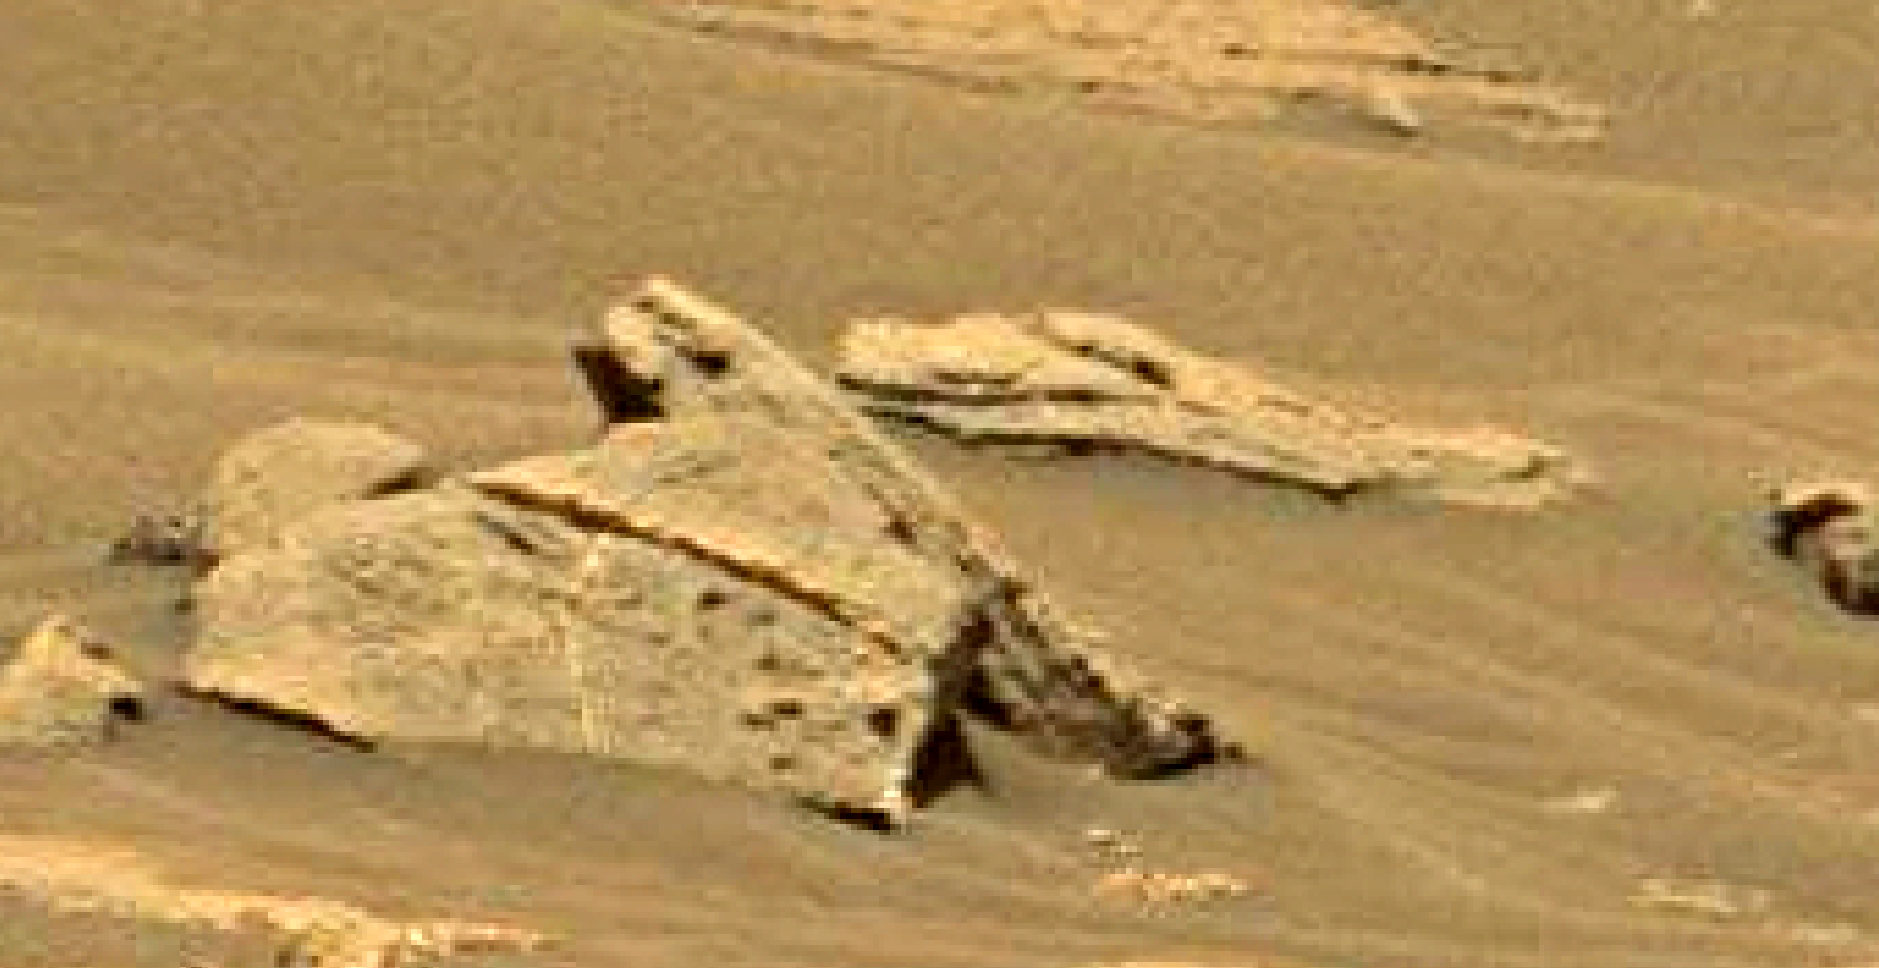 mars sol 1353 anomaly-artifacts 16 was life on mars